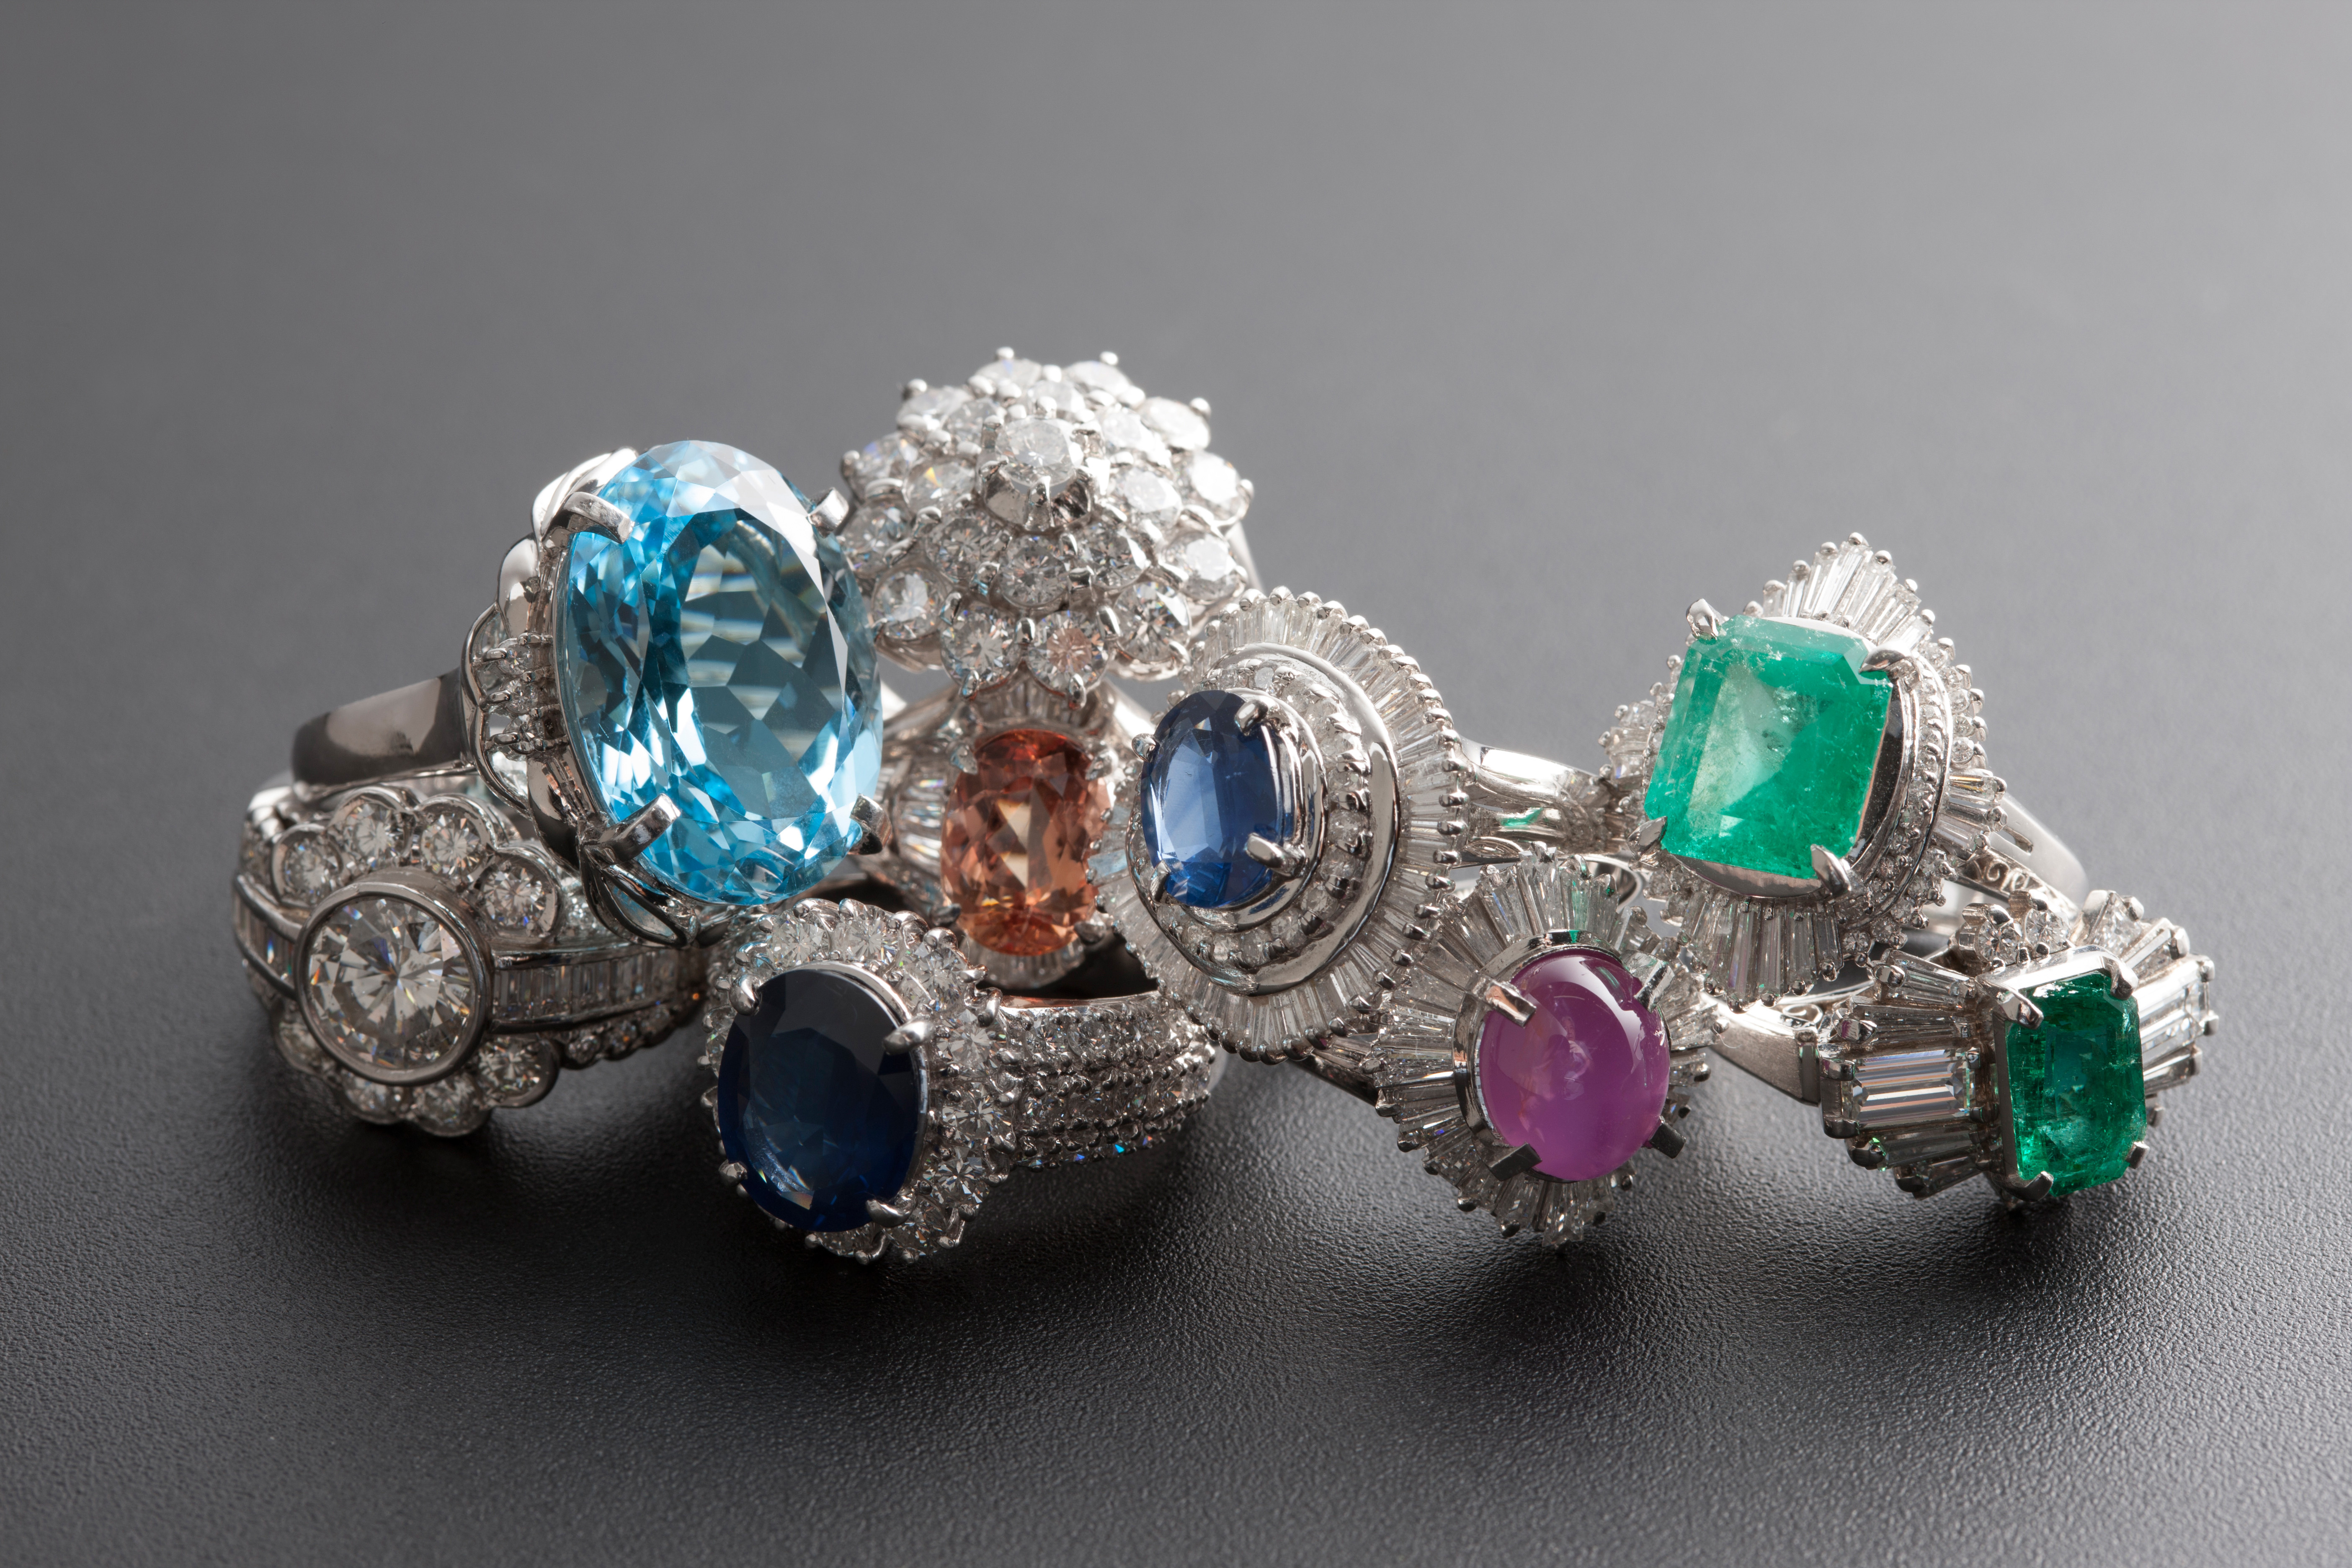 5 Gorgeous Gemstone Jewelry Pieces For August